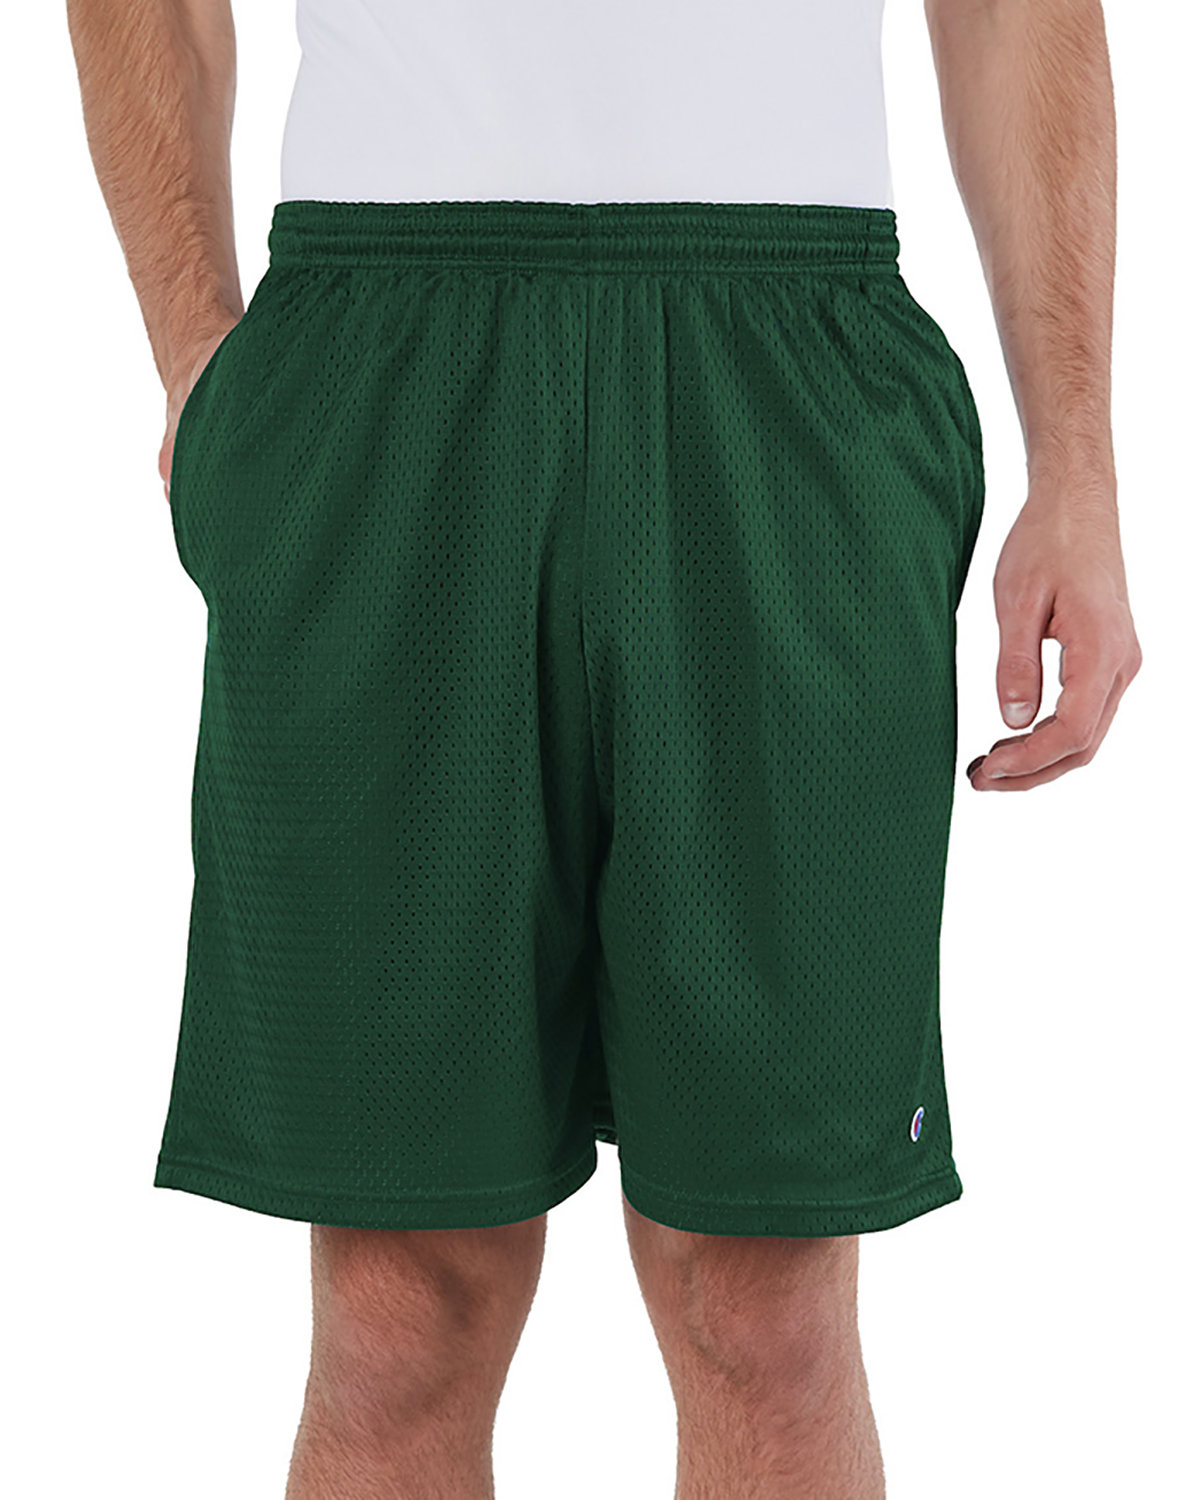 Champion Adult Mesh Short with Pockets ATHLTIC DK GREEN